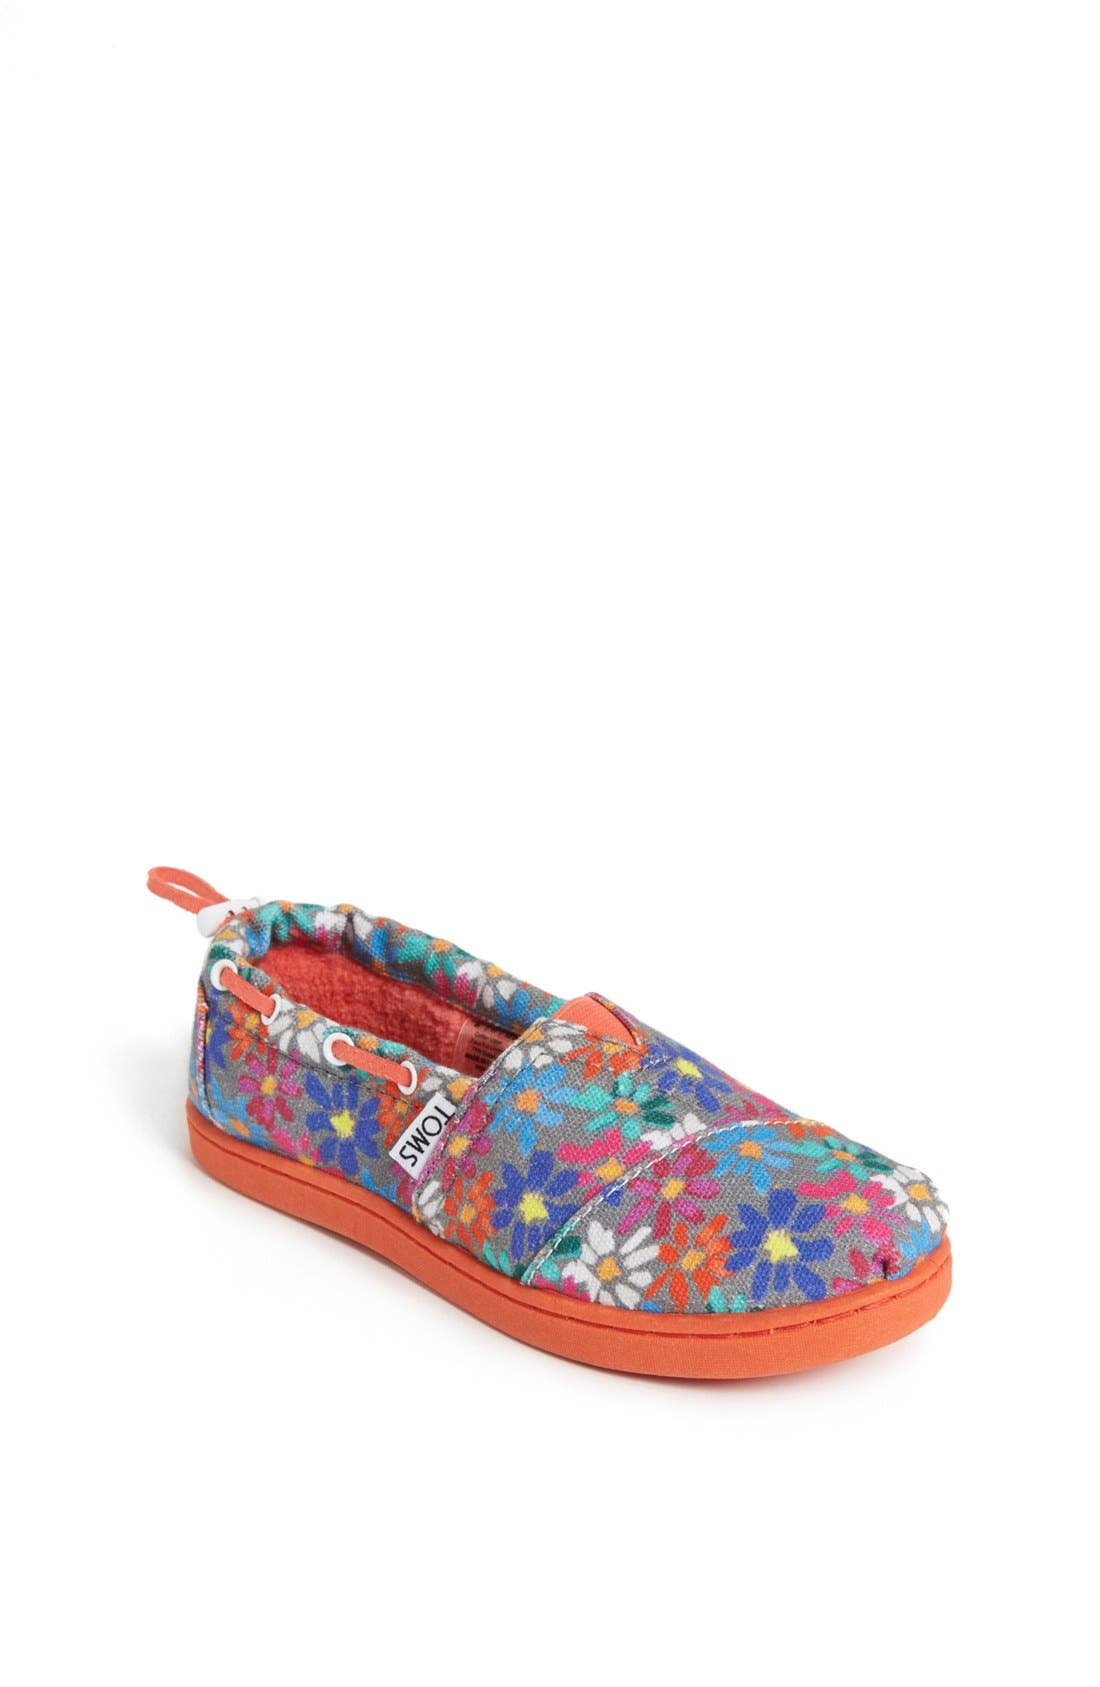 Alternate Image 1 Selected - TOMS 'Bimini Alpargata - Youth' Slip-On (Toddler, Little Kid & Big Kid)